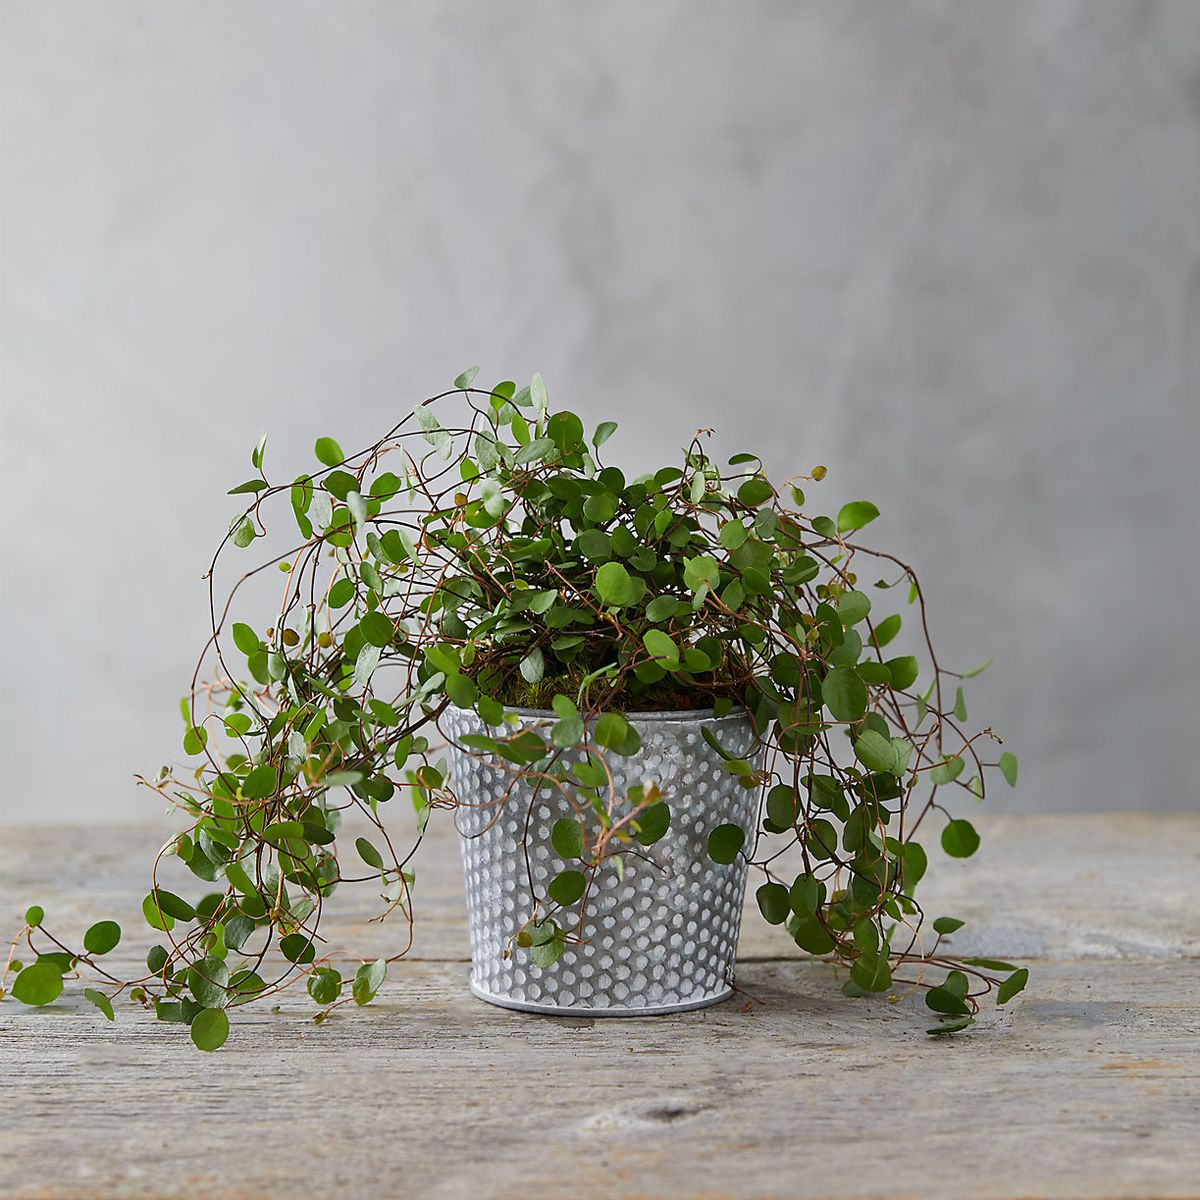 Buy indoor plants online at these stores - Curbed on non toxic house plants, allergy house plants, long lasting house plants, durable house plants,